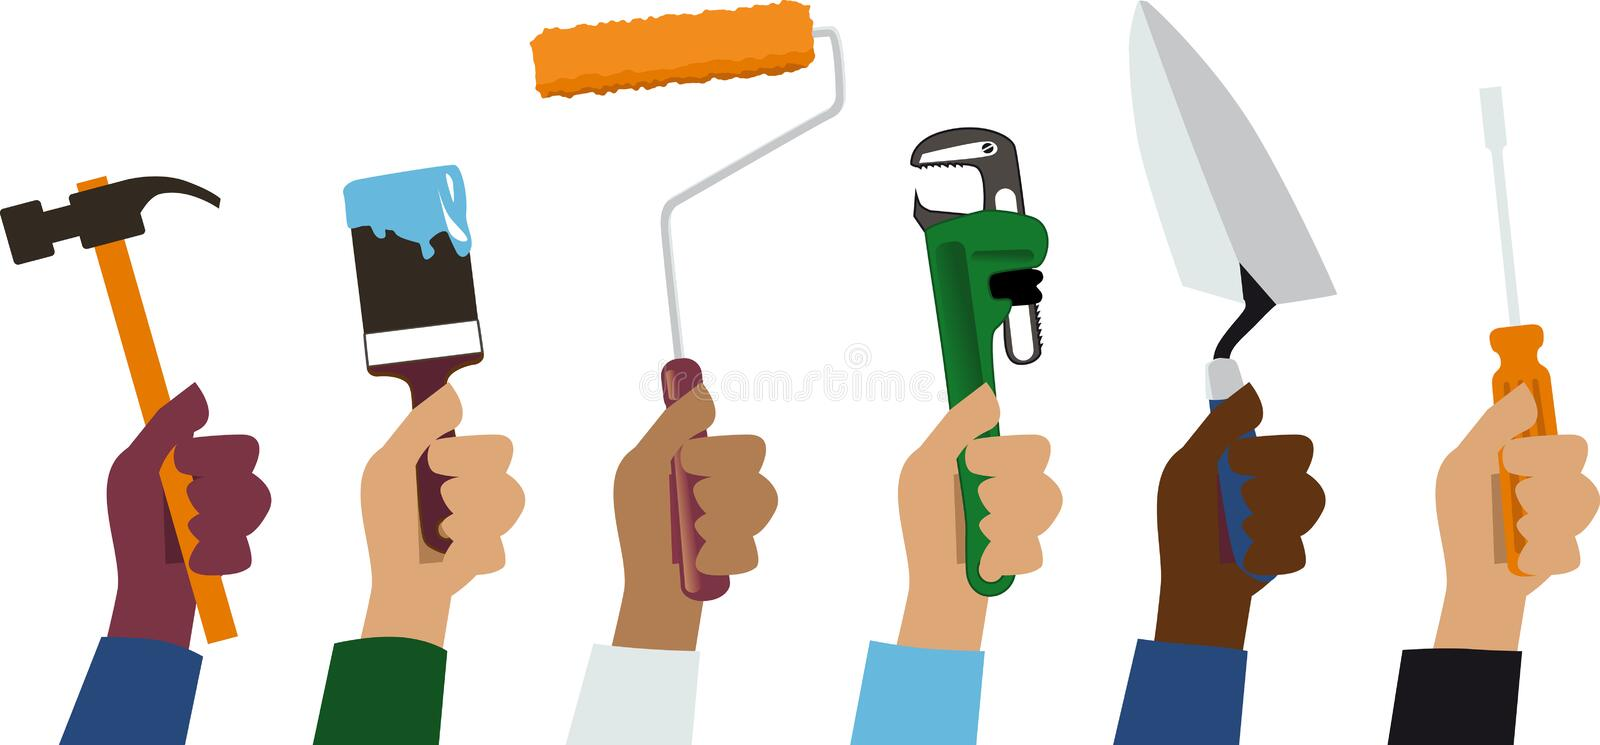 Handymen looking for a job vector illustration